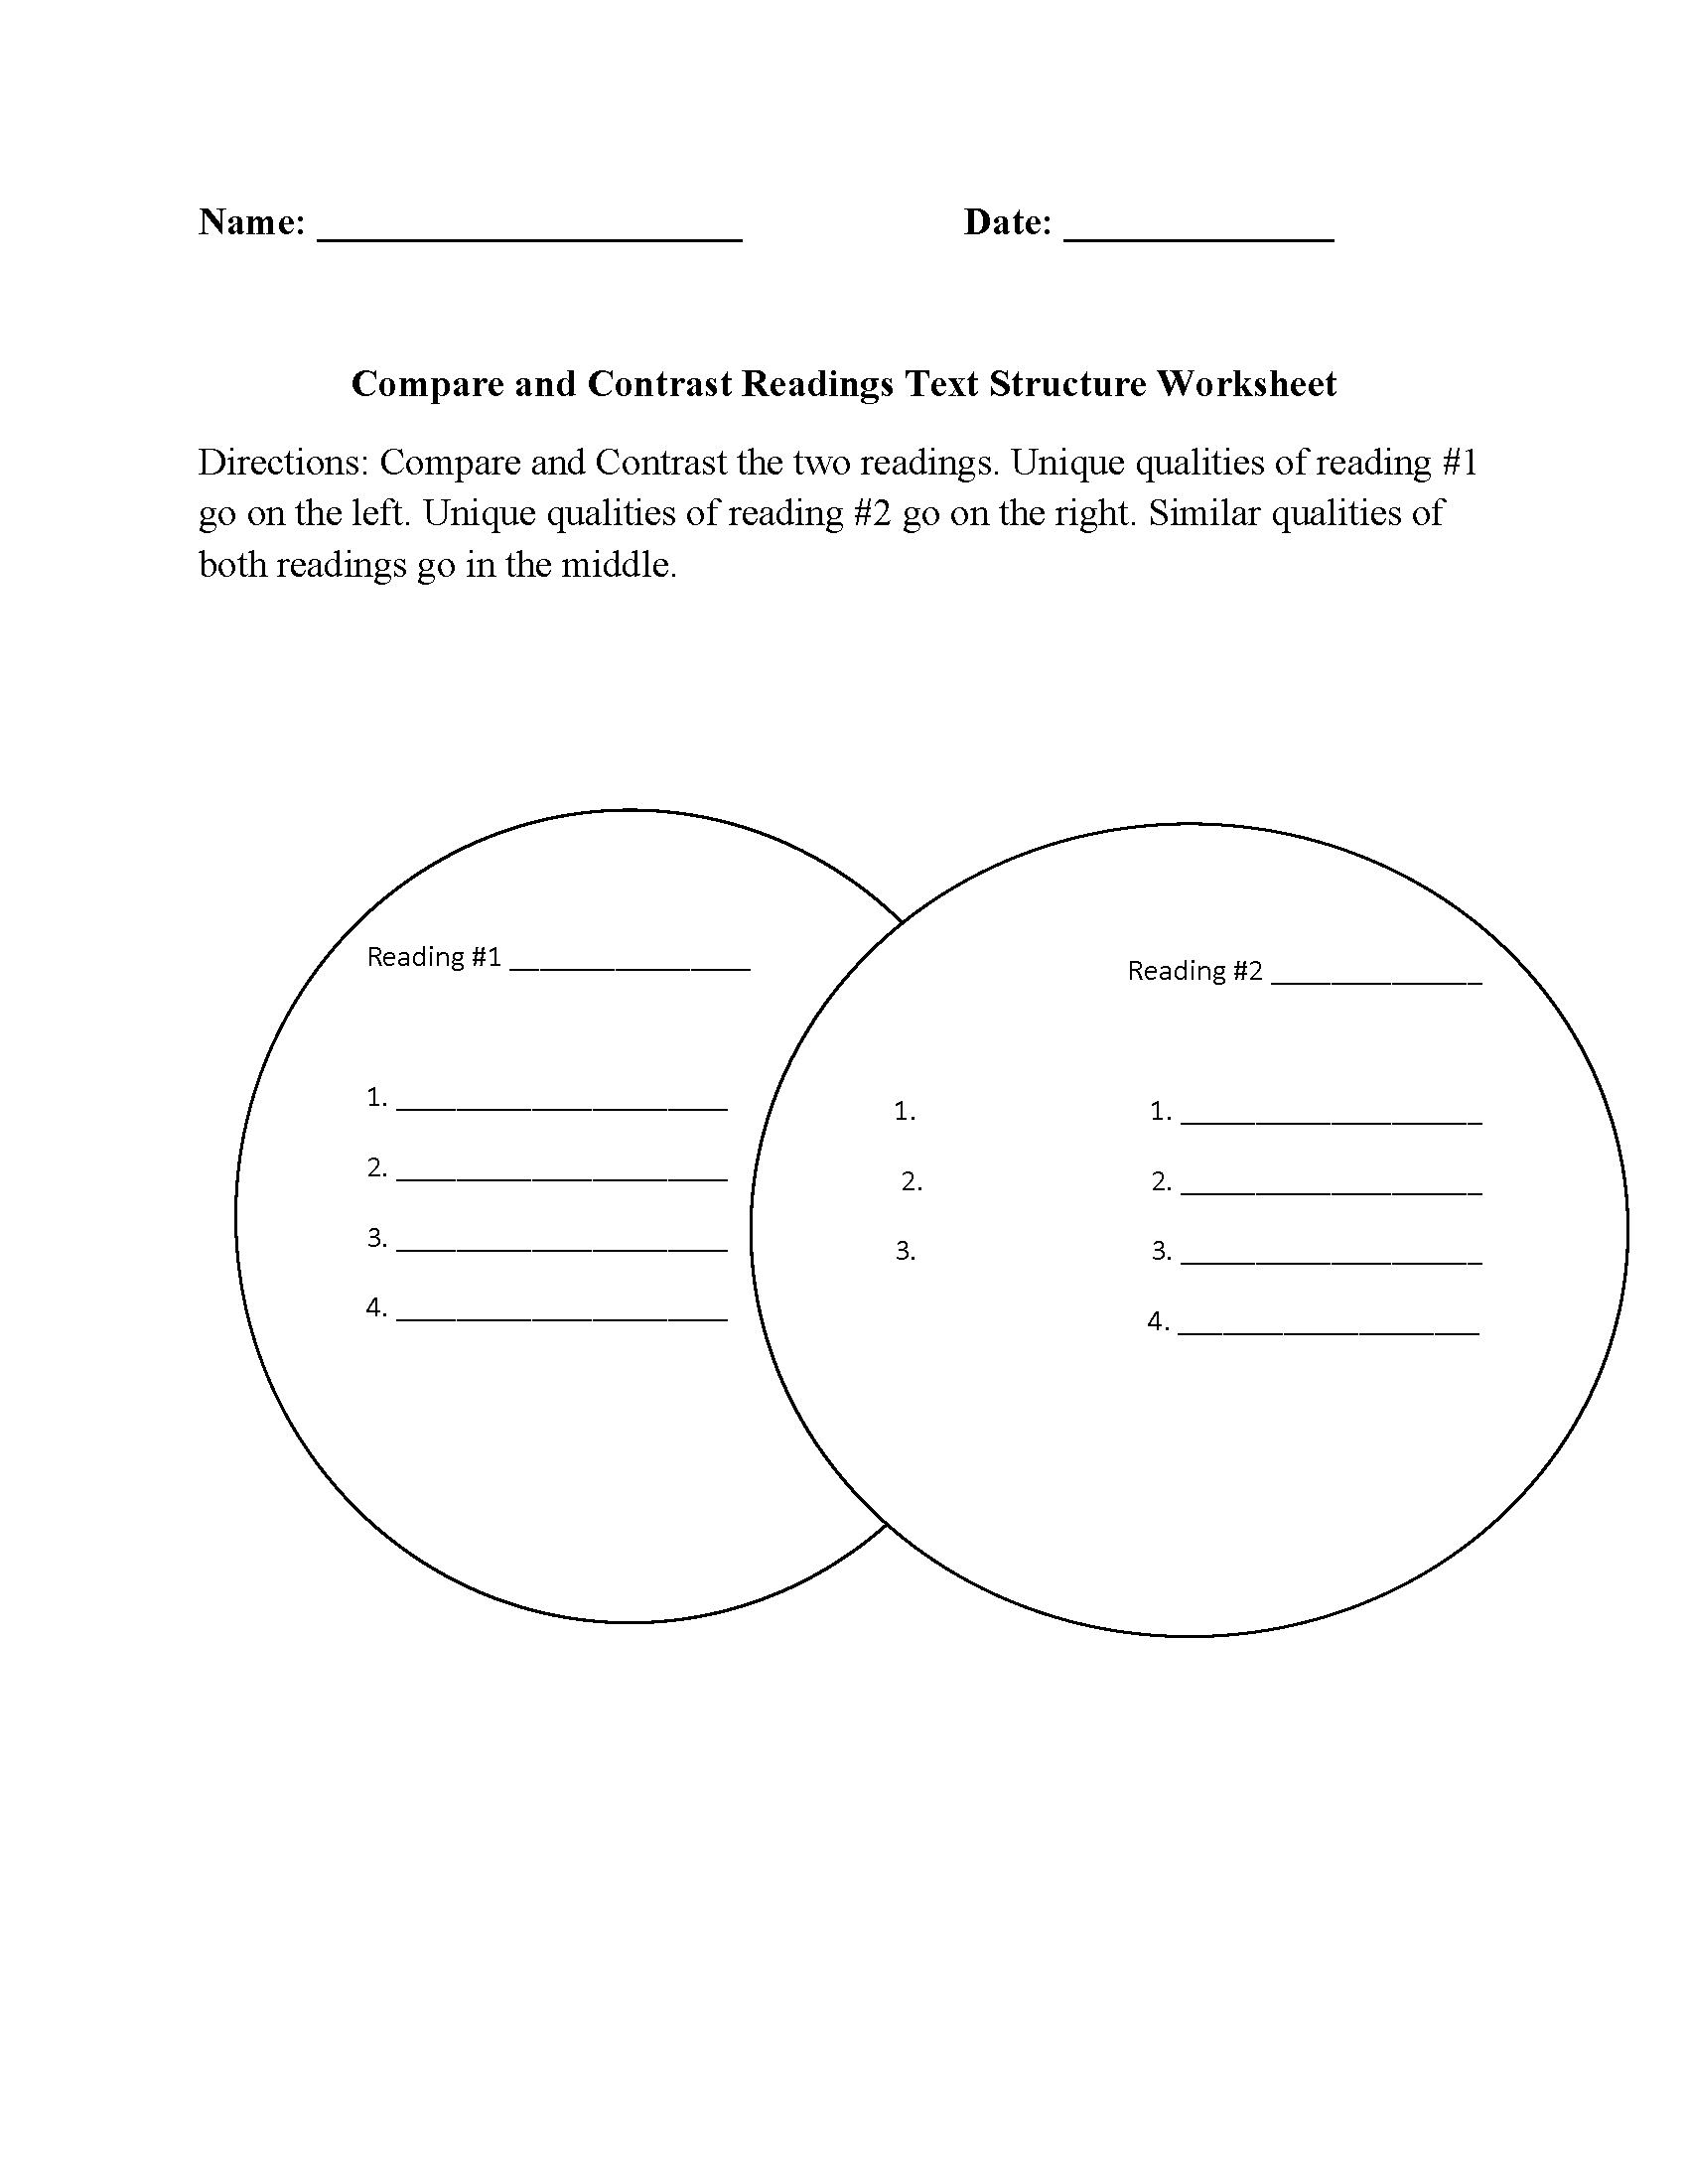 com text structure worksheets compare and contrast readings text structure worksheets